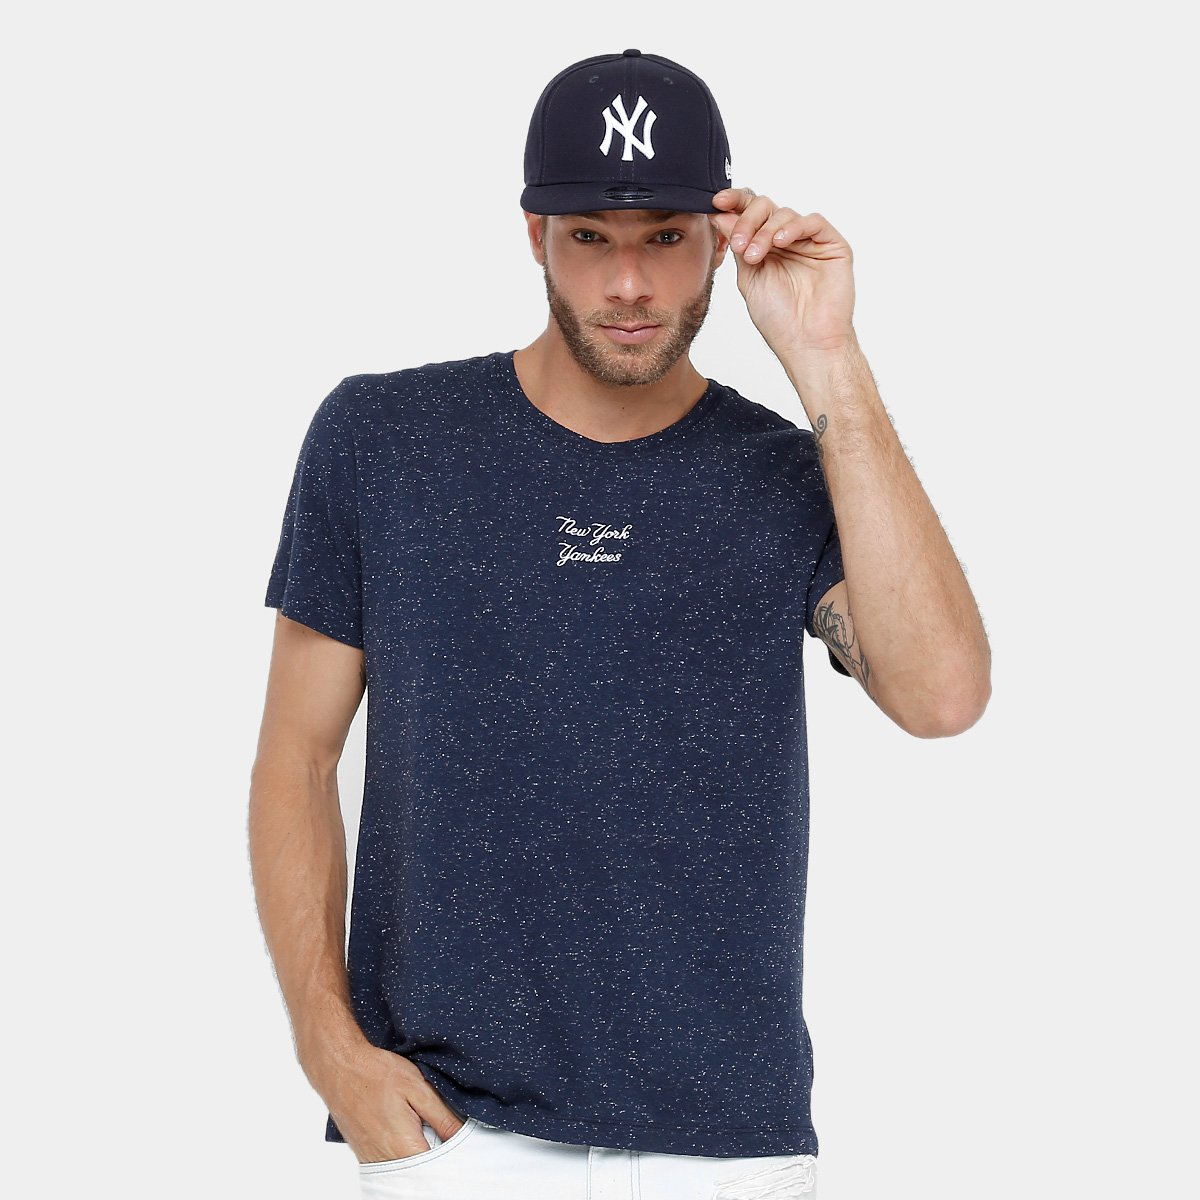 Camiseta New York Yankees New Era 932 Masculina 3b18fef0964